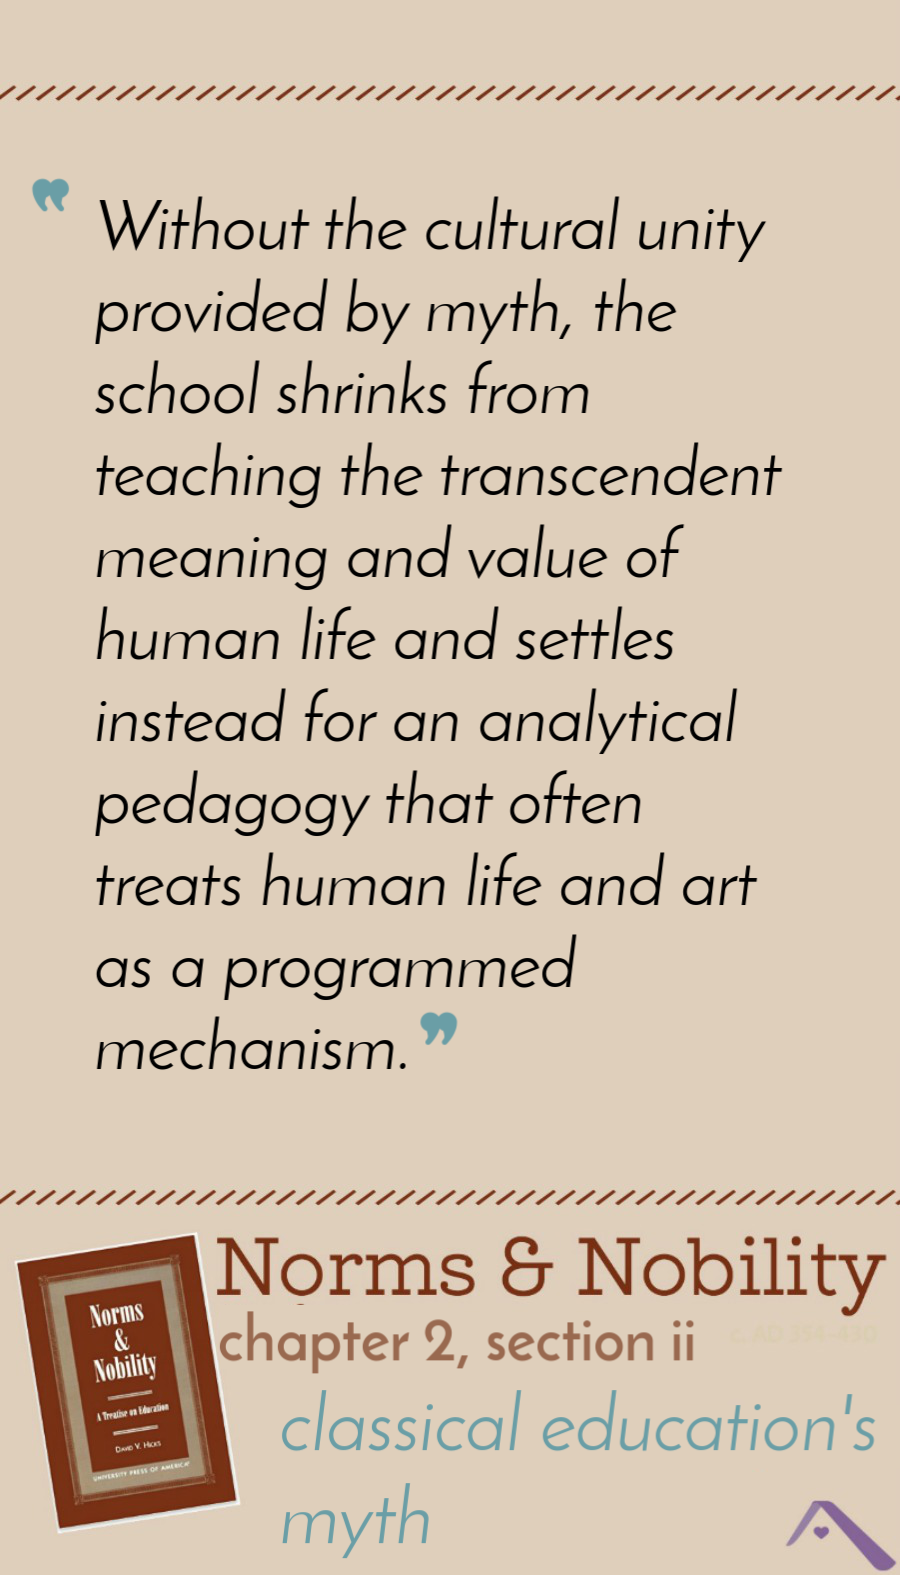 """Without the cultural unity provided by myth, the school shrinks from teaching the transcendent meaning and value of human life and settles instead for an analytical pedagogy that often treats human life and art as a programmed mechanism."""